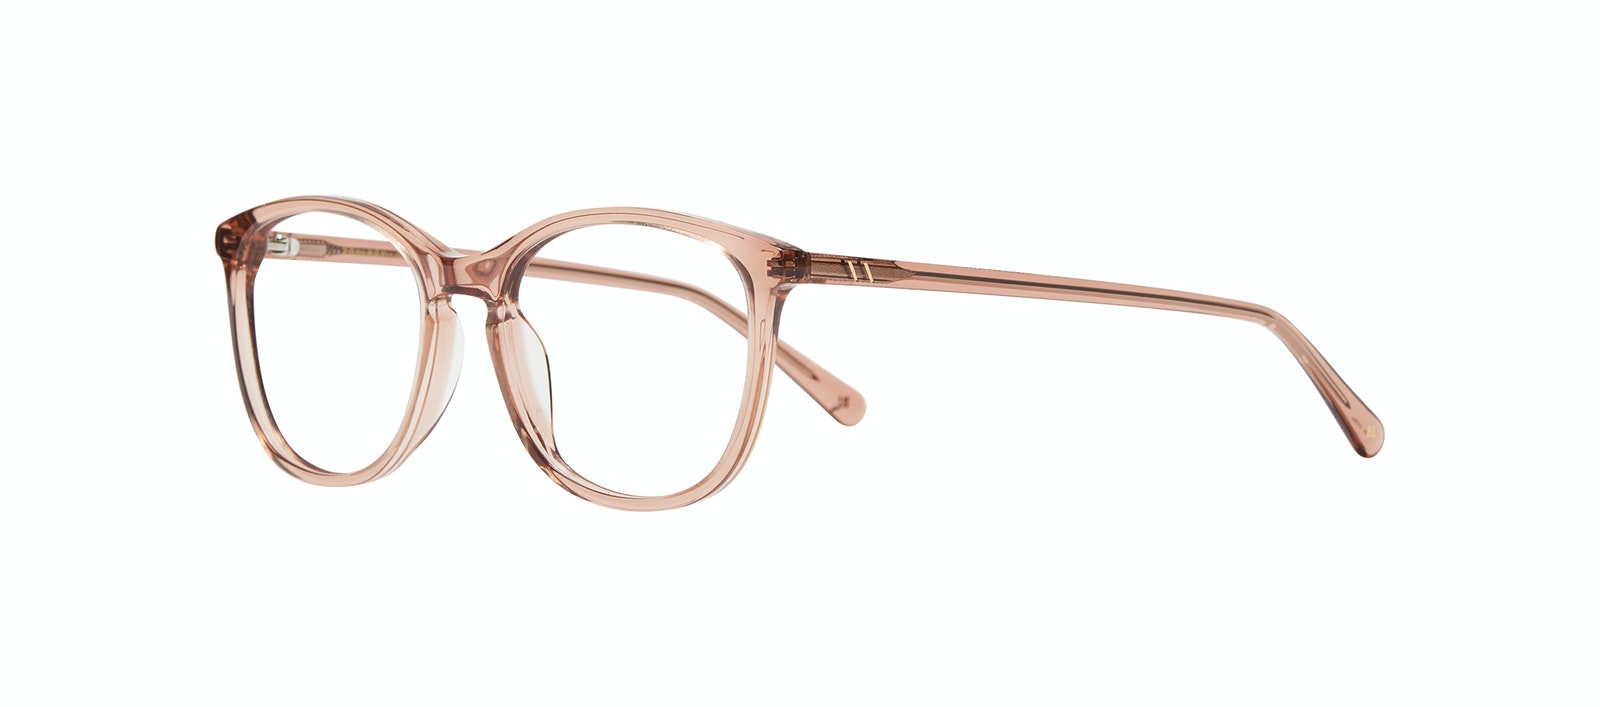 Affordable Fashion Glasses Rectangle Square Round Eyeglasses Women Nadine S Rose Tilt